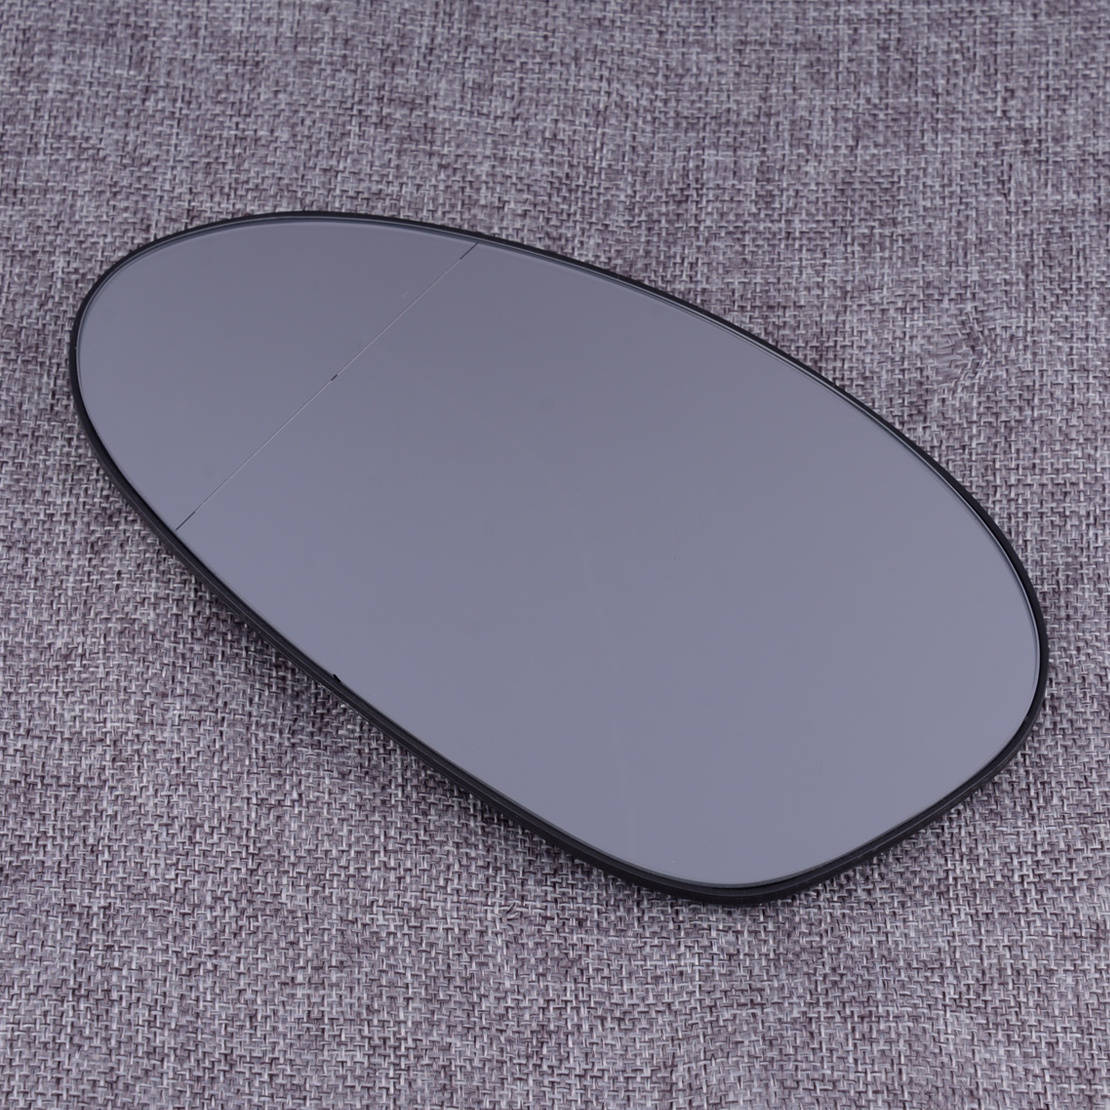 2 Pin Car Left <font><b>Side</b></font> Wing Door <font><b>Mirror</b></font> Glass Heated White Fit for <font><b>BMW</b></font> E82 E90 E91 E92 3-Series <font><b>E46</b></font> <font><b>M3</b></font> E85 Z4 E86 51167157247 image